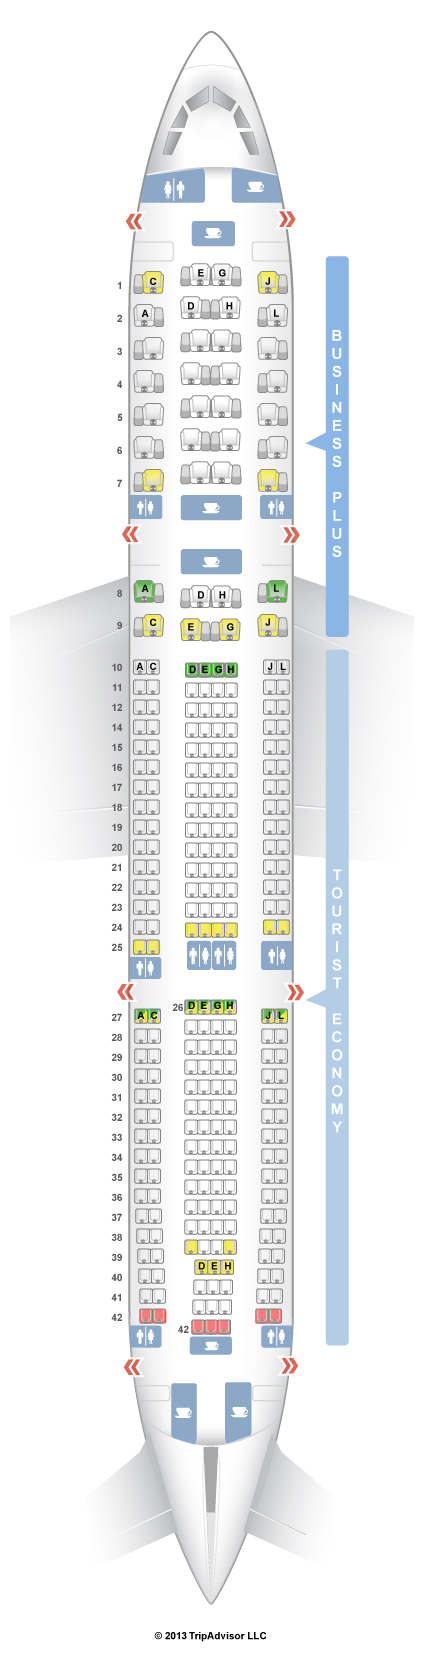 iberia airlines seating chart wwwmicrofinanceindiaorg